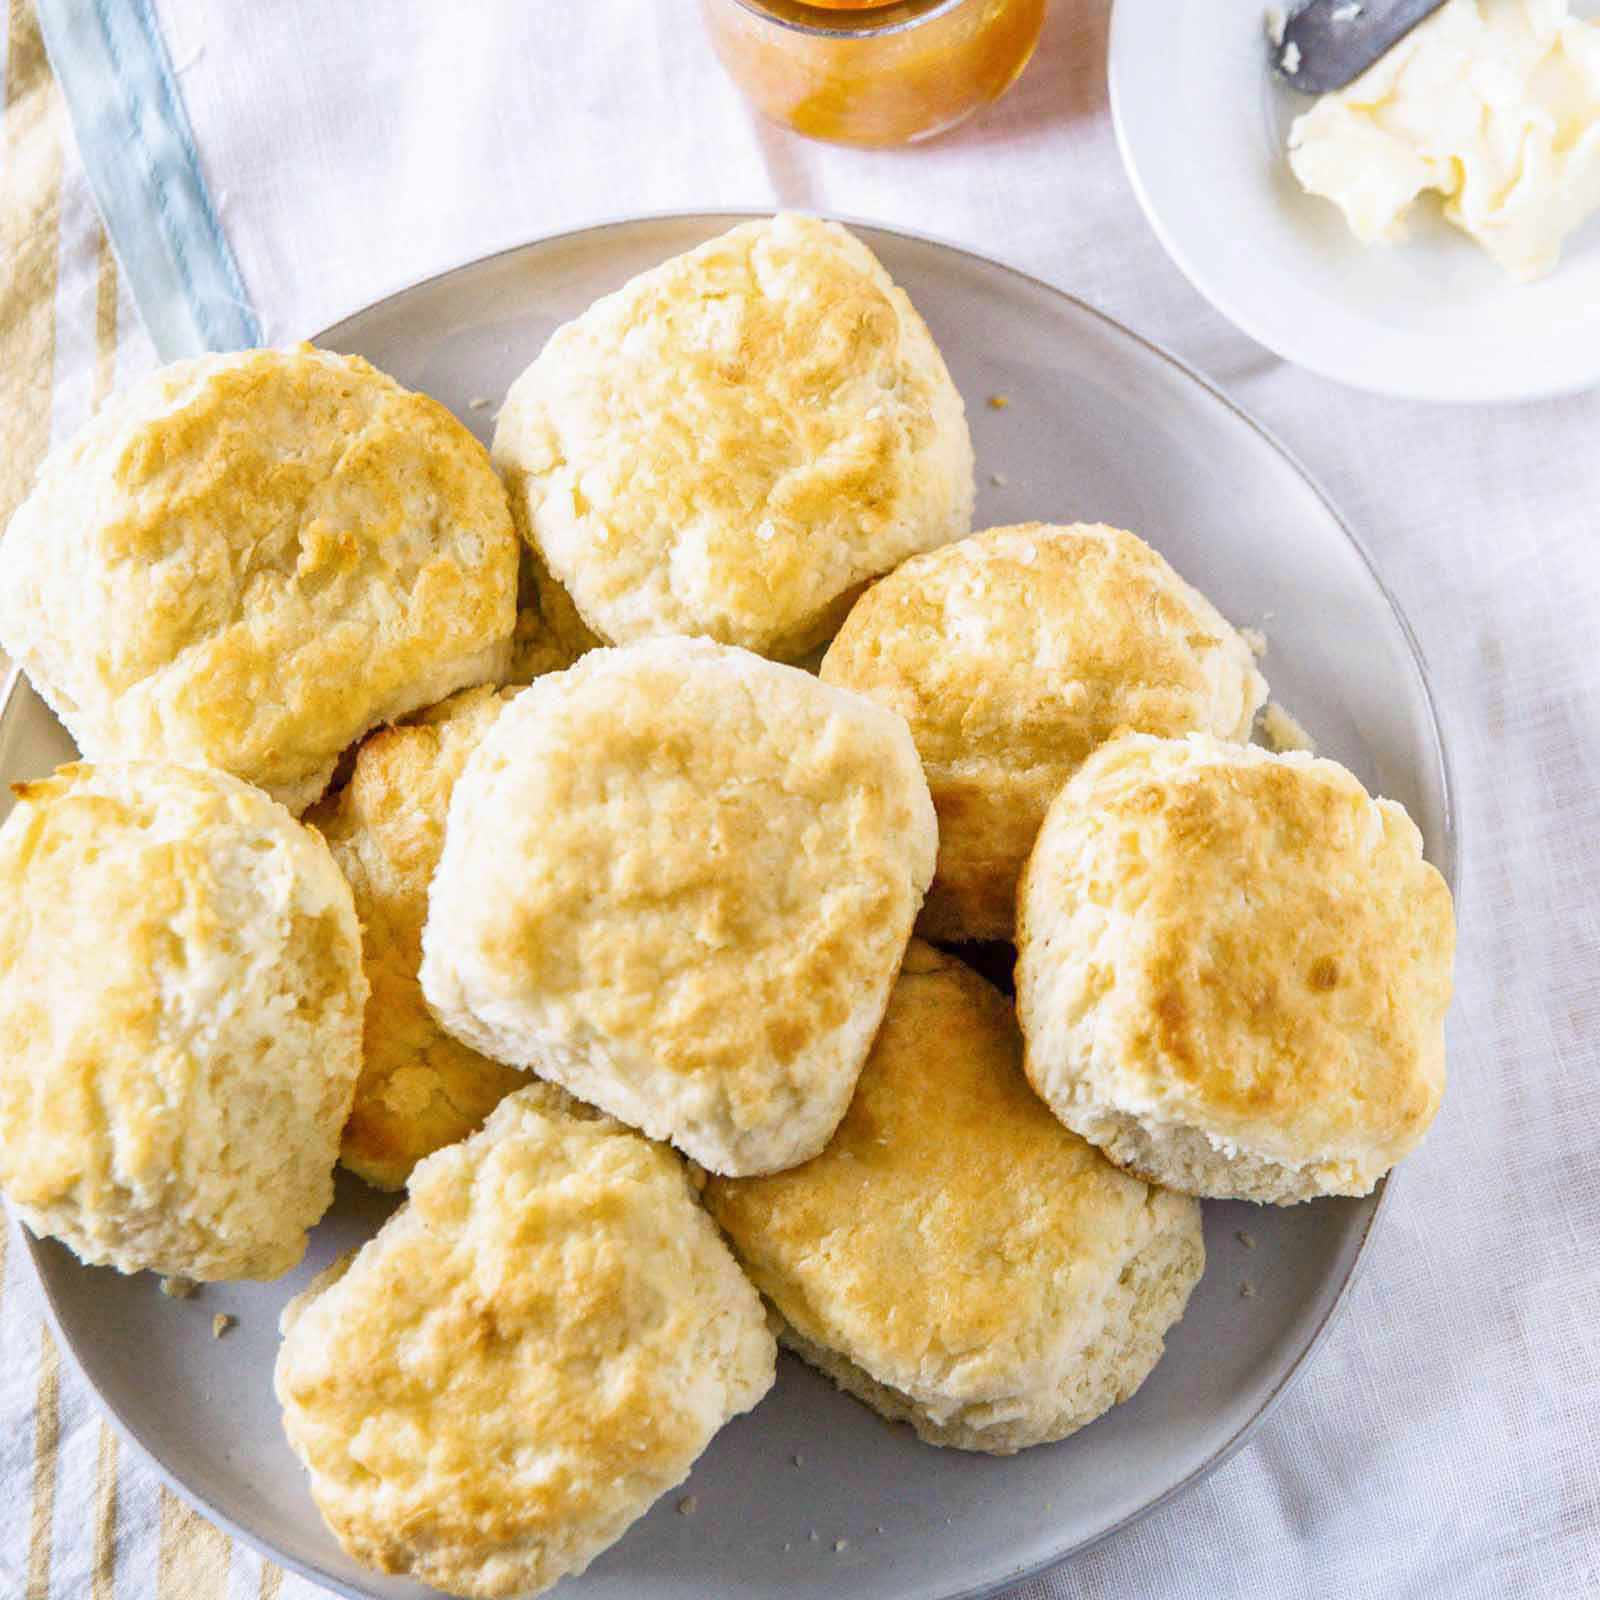 Southern Biscuits with White Lily Flour